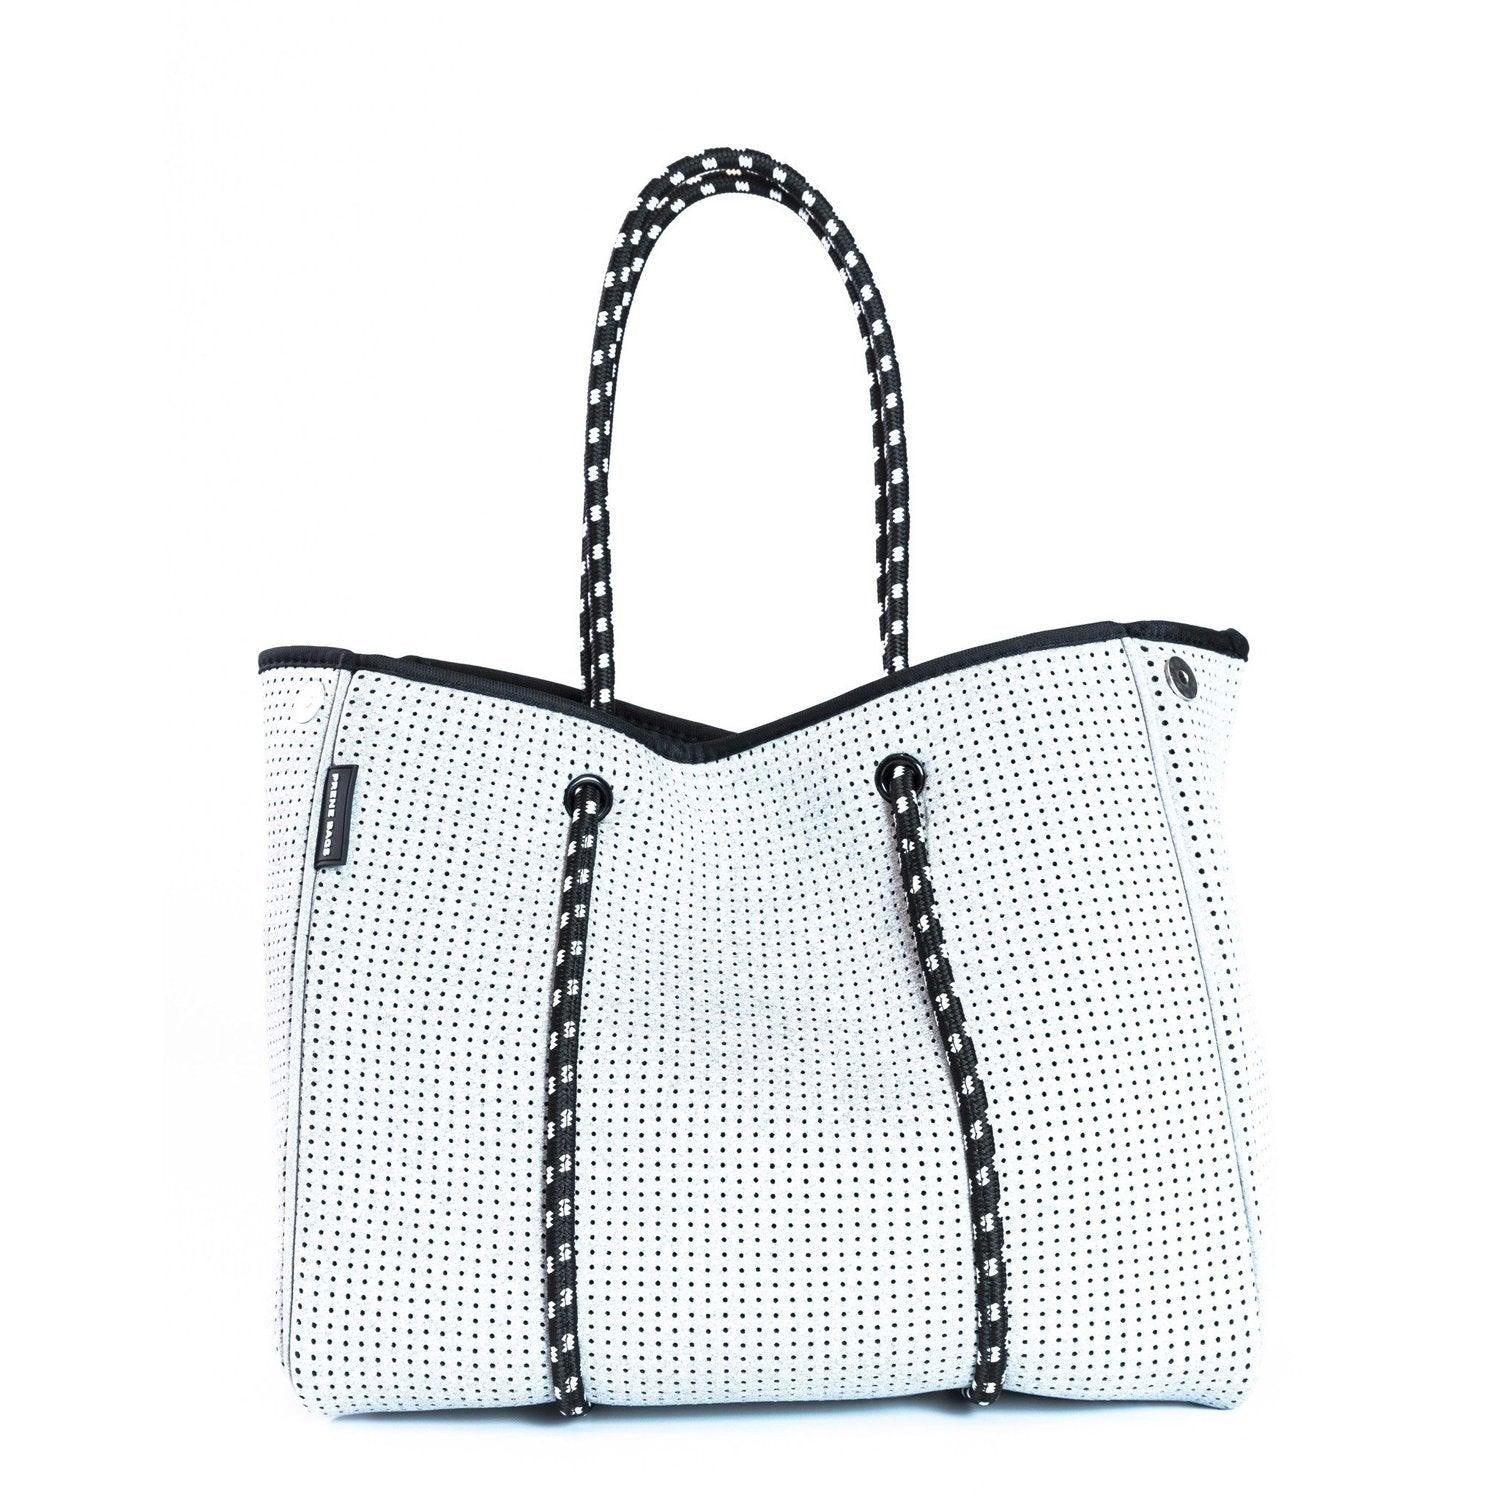 Prene Portsea Bag - Light Grey